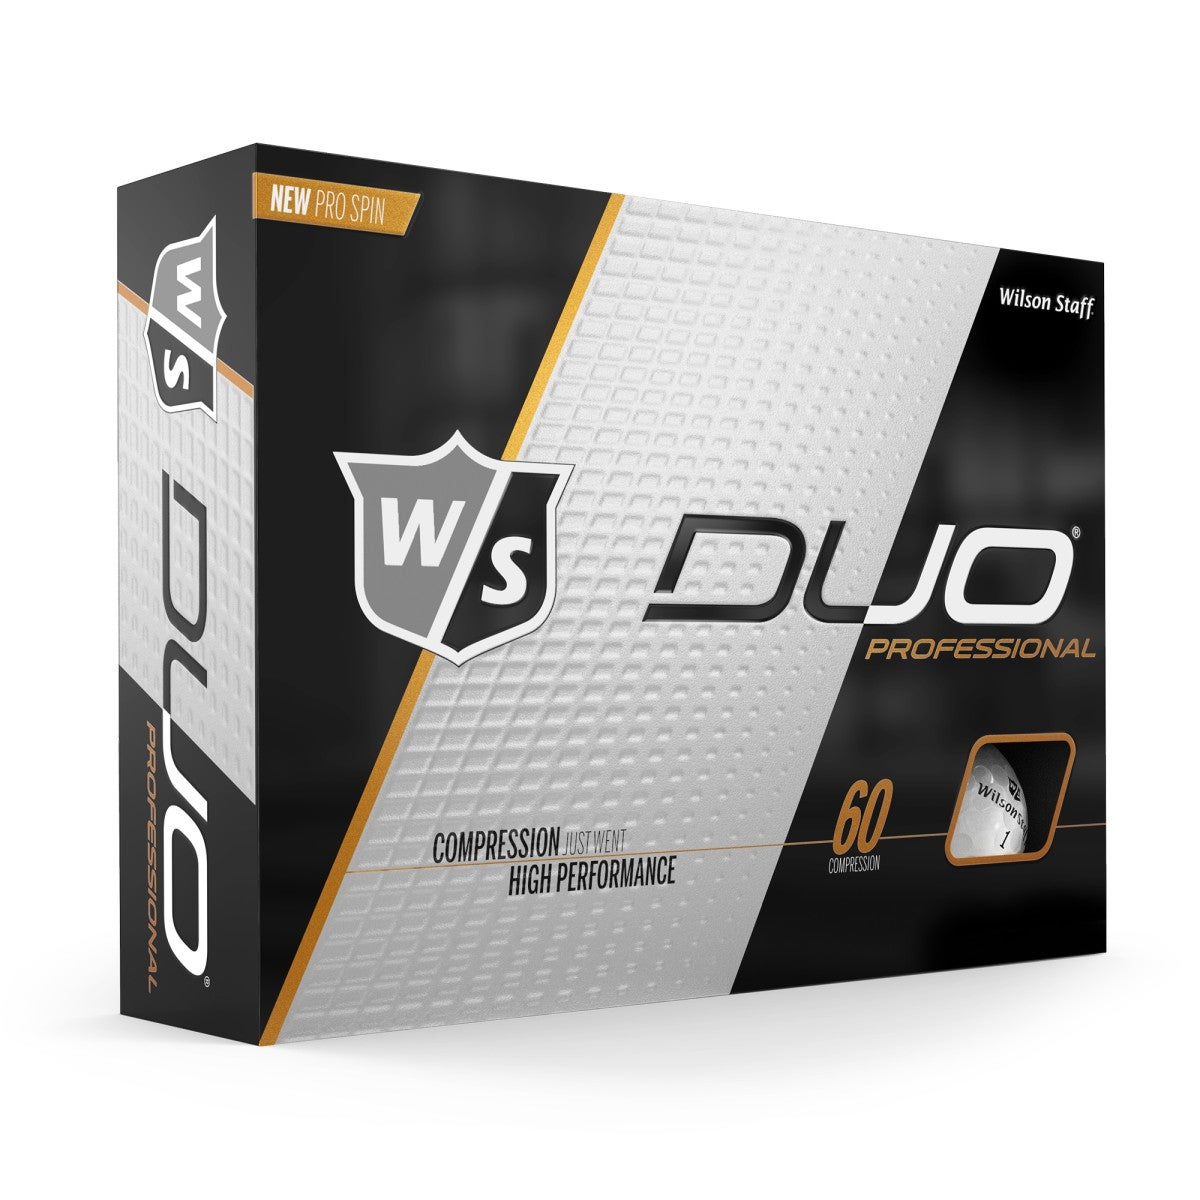 Wilson Staff Duo Pro Golf Balls